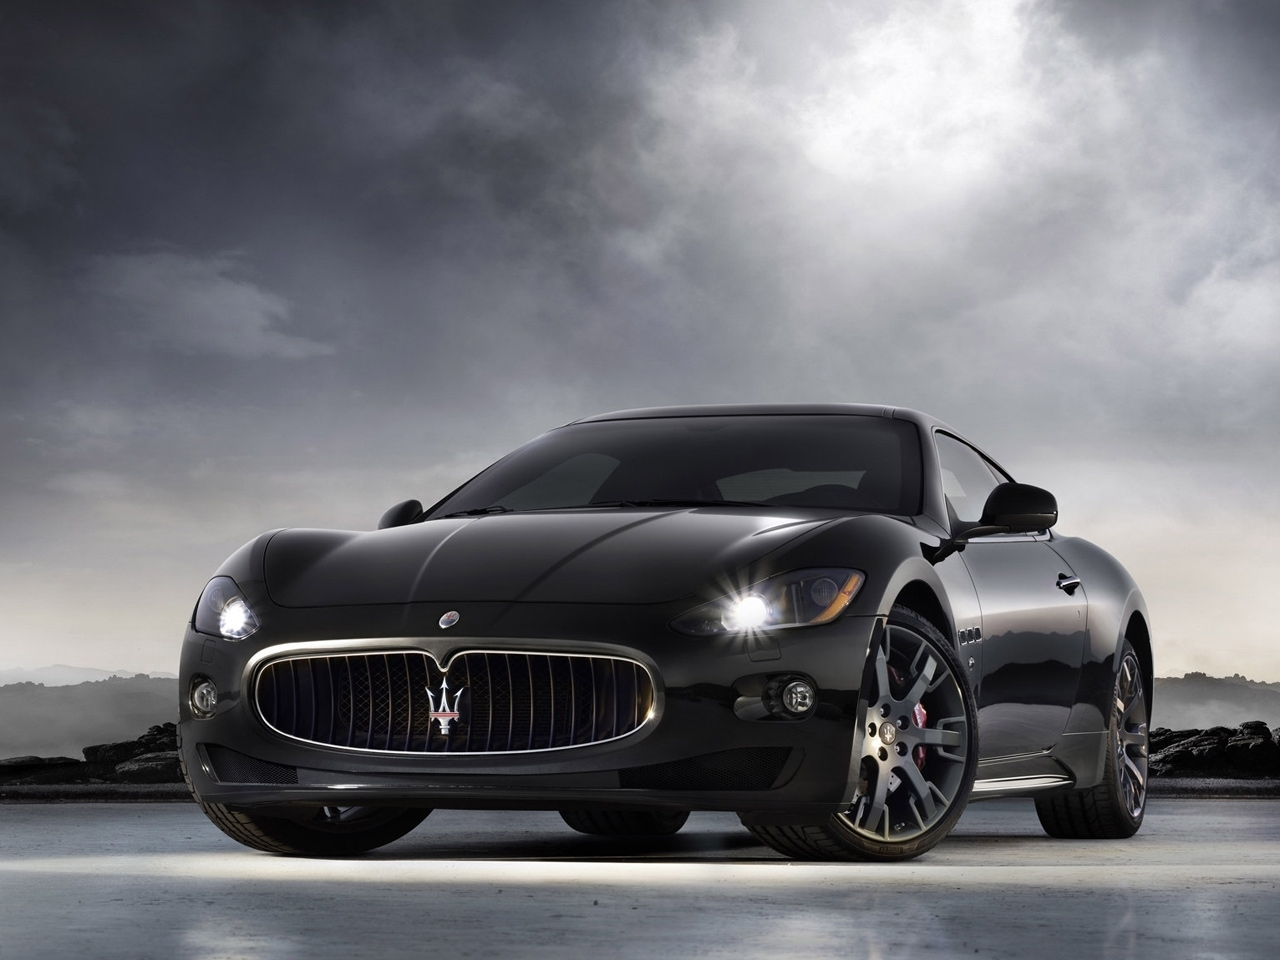 44592 download wallpaper Transport, Auto, Maserati screensavers and pictures for free